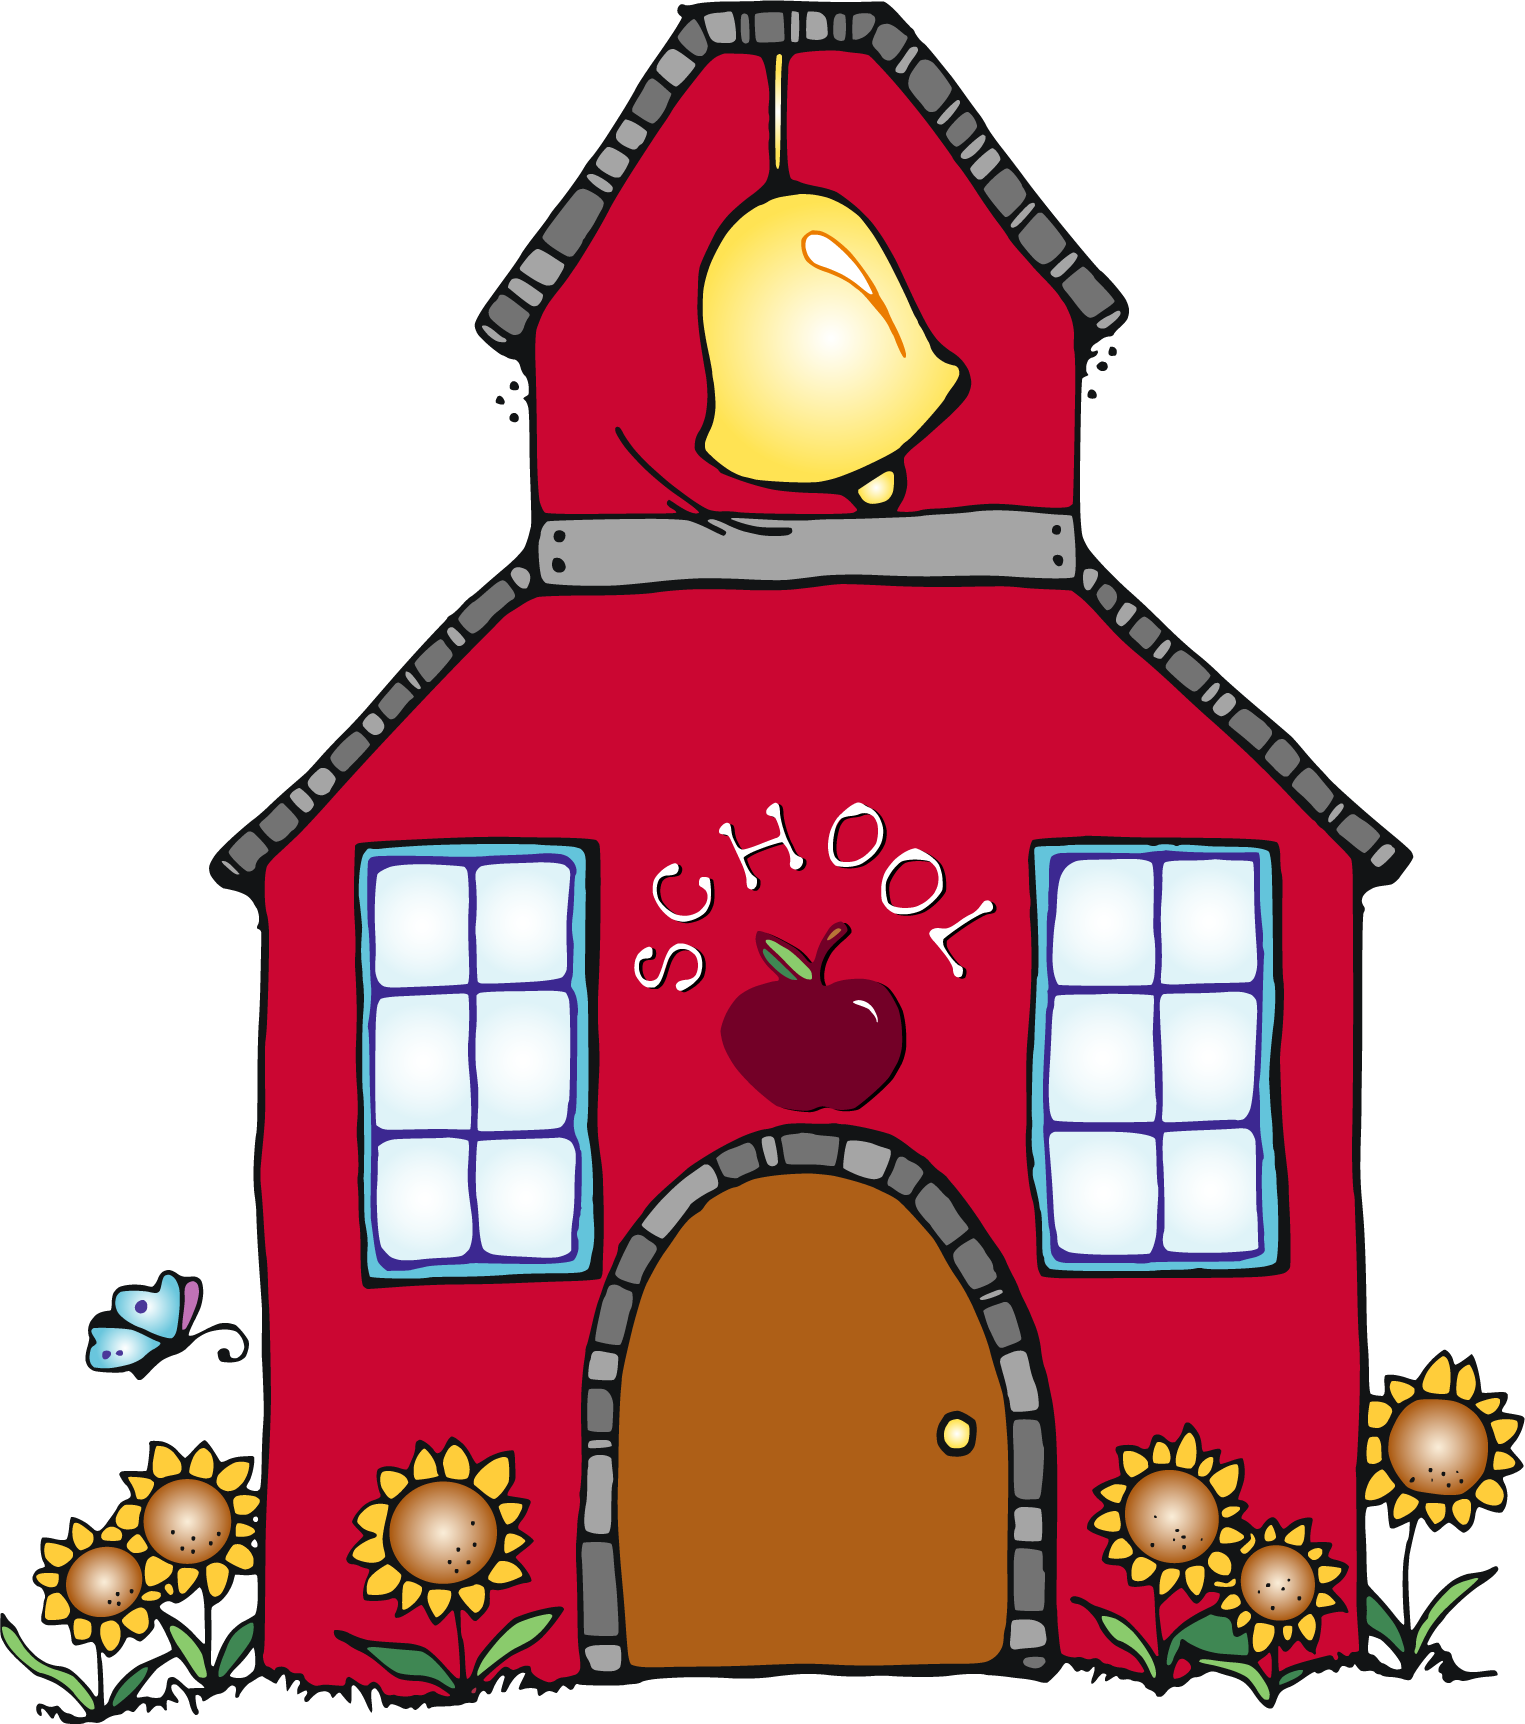 Dj inkers school clipart clipart images gallery for free download.